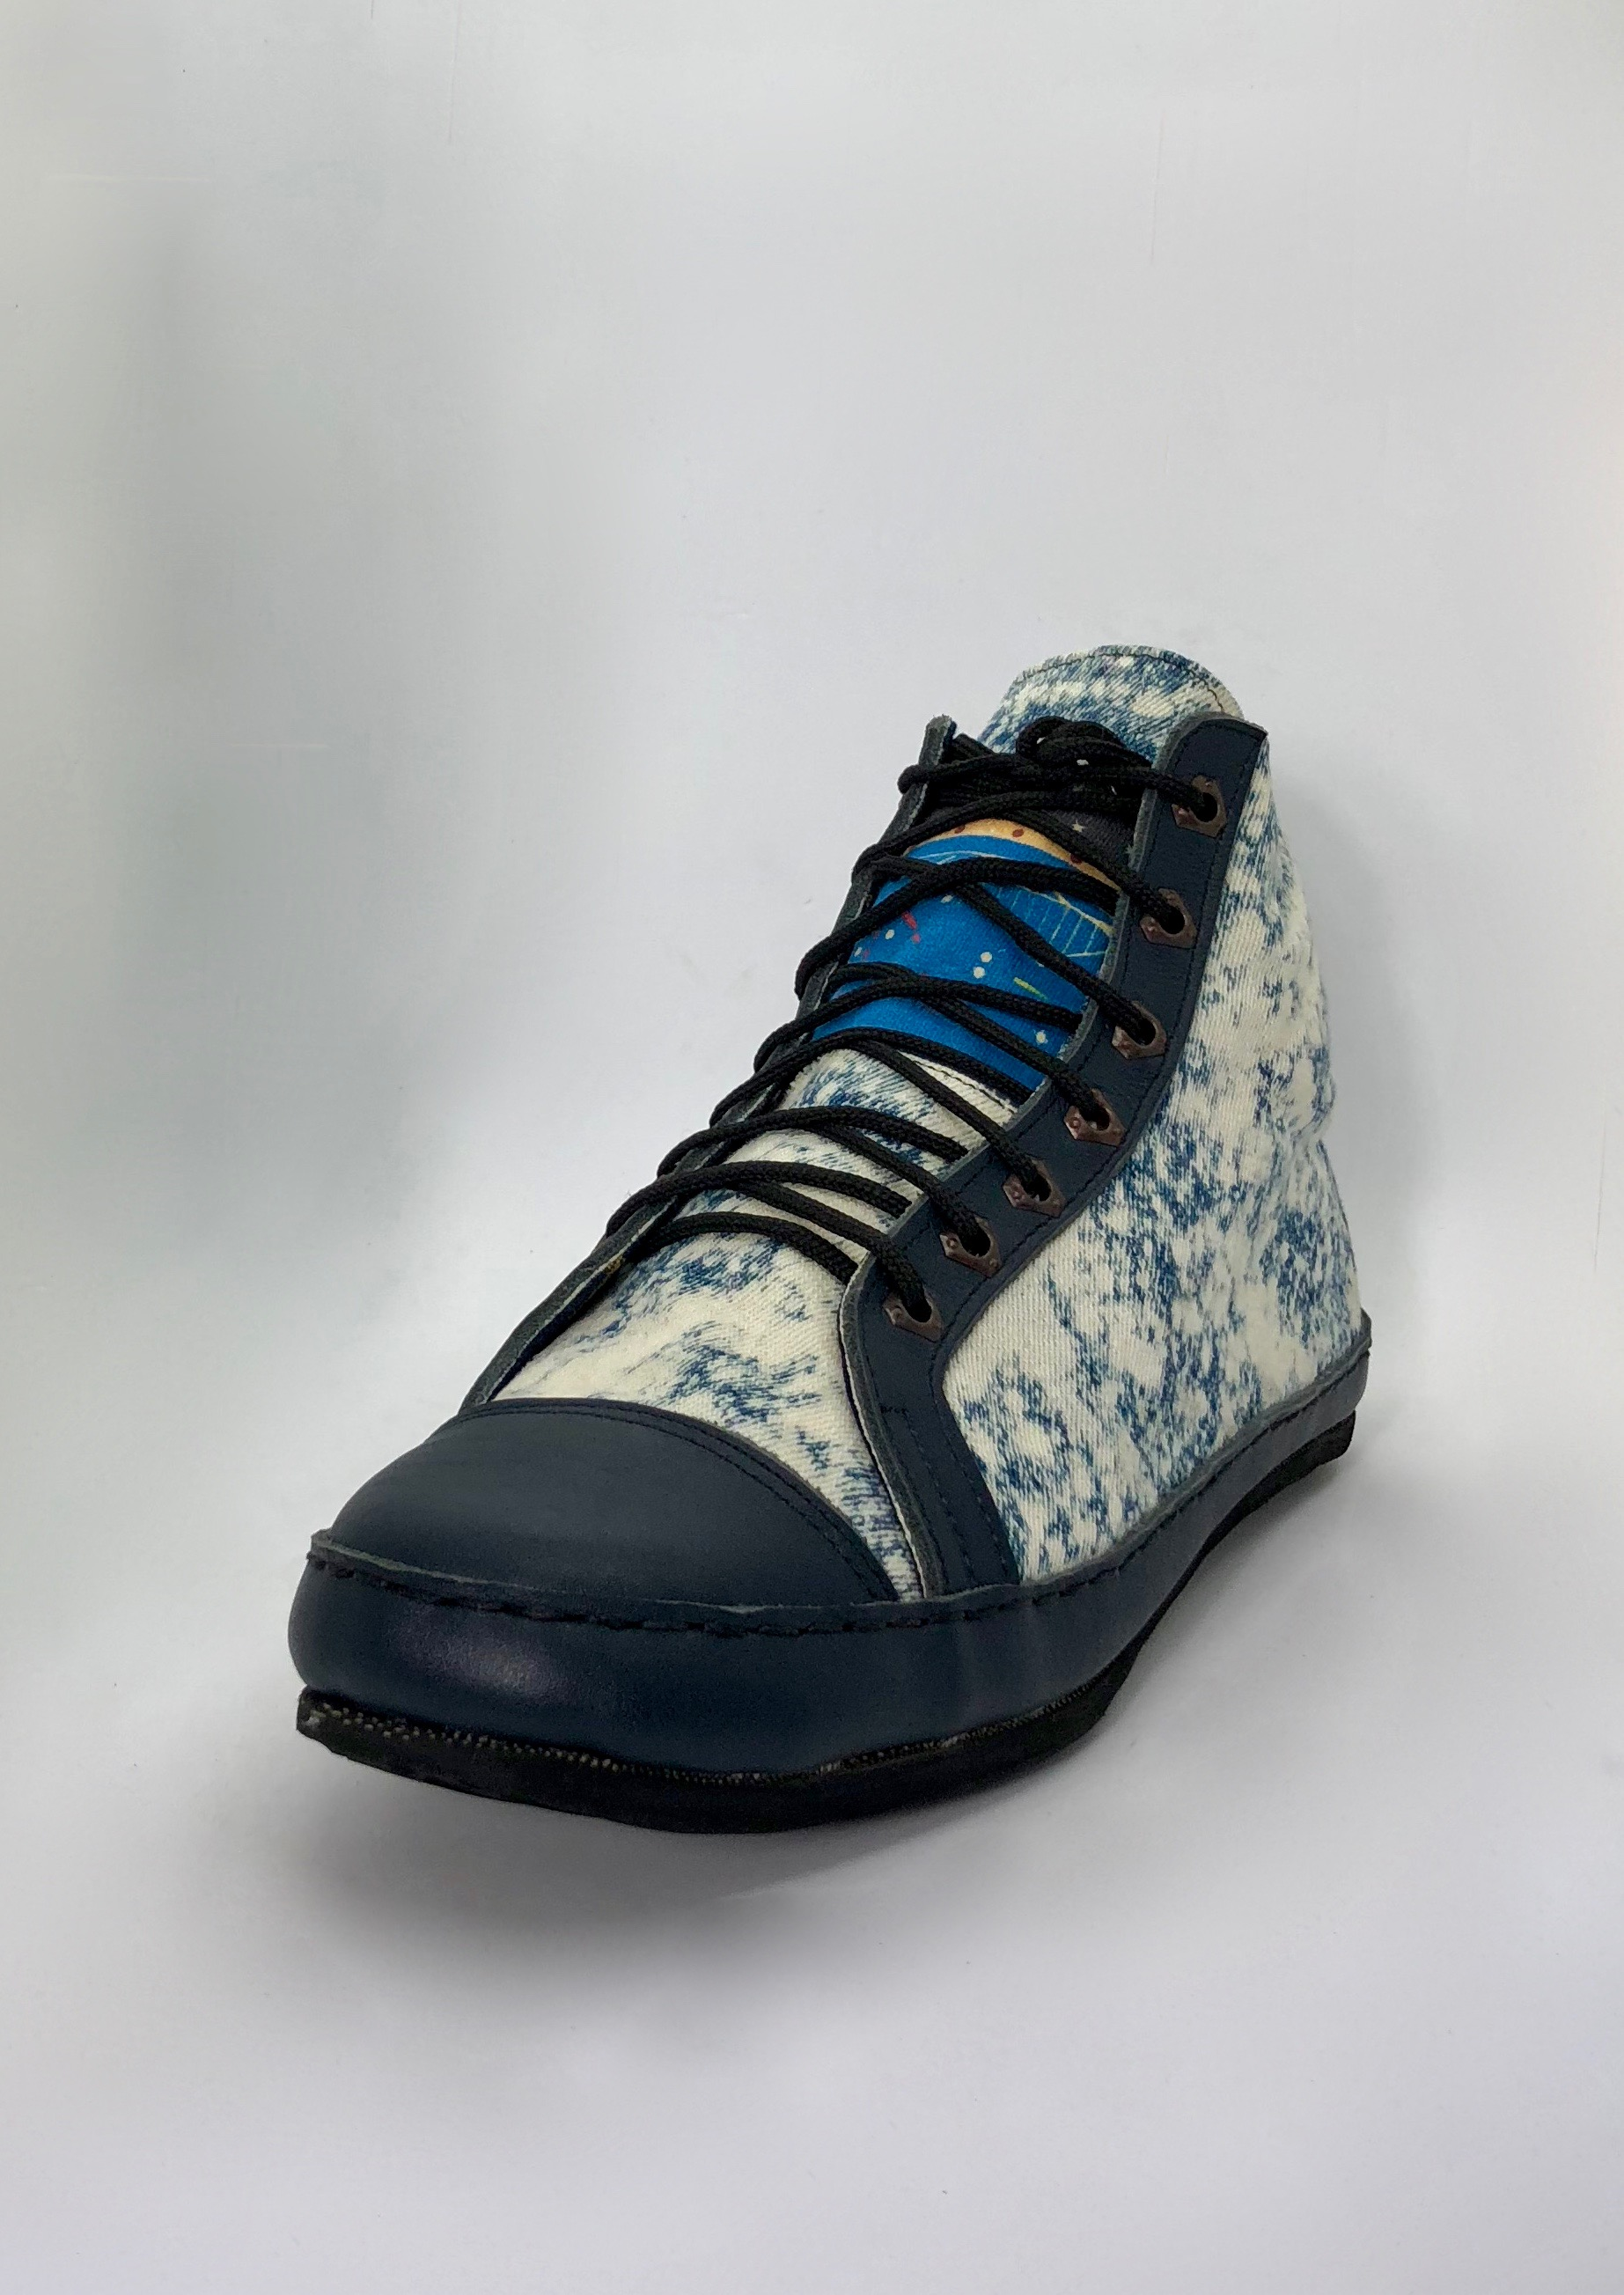 eARTh STONEWASHED DENIM Sneakers - THE SHOE OF MANY ELEMENTS